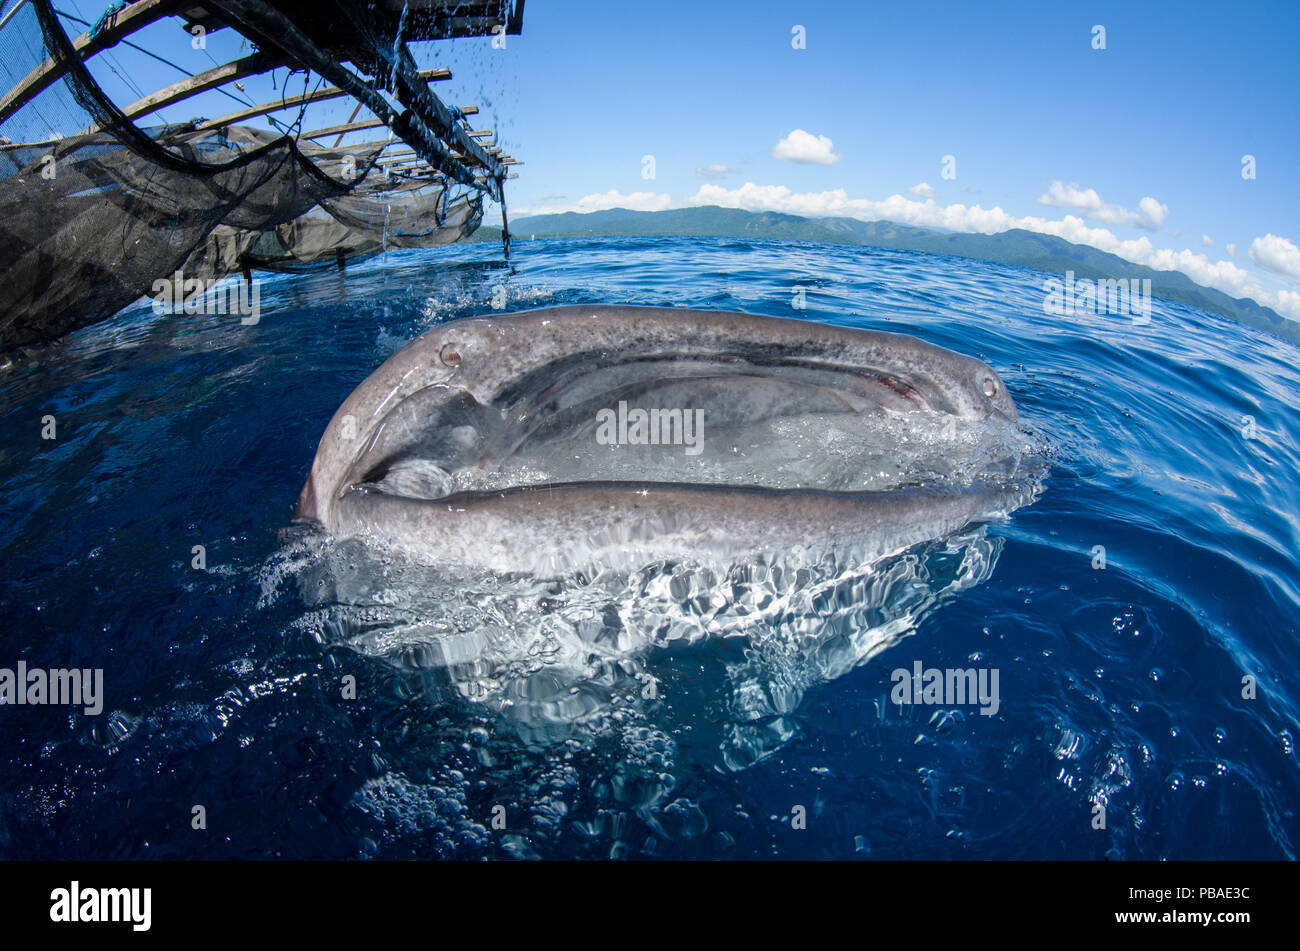 Whale Shark (Rhincodon typus) feeding at Bagan (floating fishing platform),  Cenderawasih Bay, West Papua, Indonesia. Winner of the Man and Nature Portfolio Award in the Terre Sauvage Nature Images Awards Competition 2015. Stock Photo